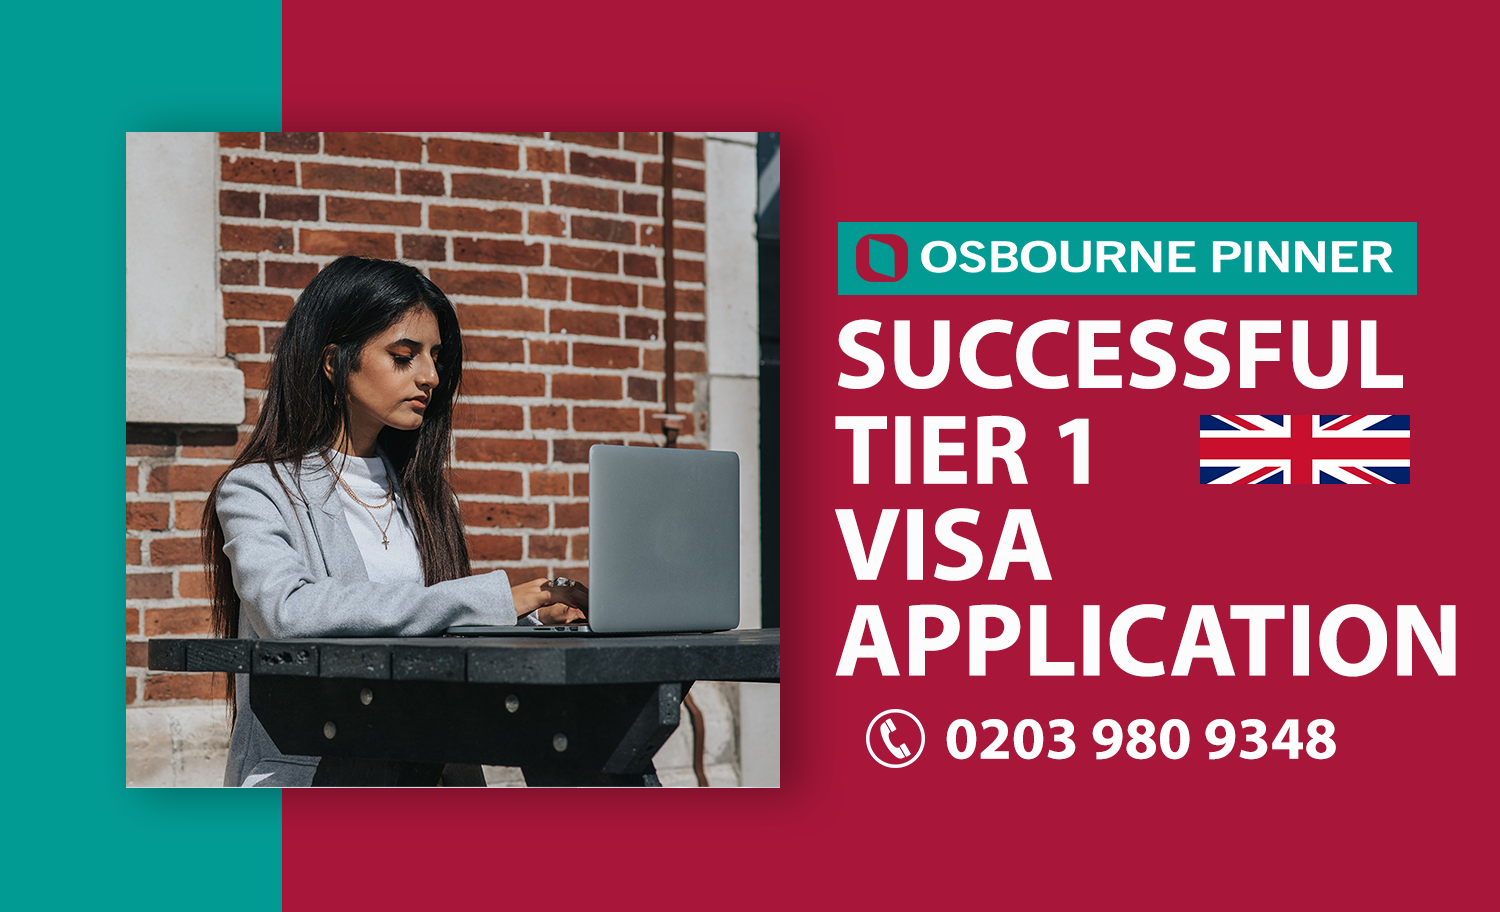 Exceptional Tier 1 Visa - Osbourne Pinner Turns Out the Best Support